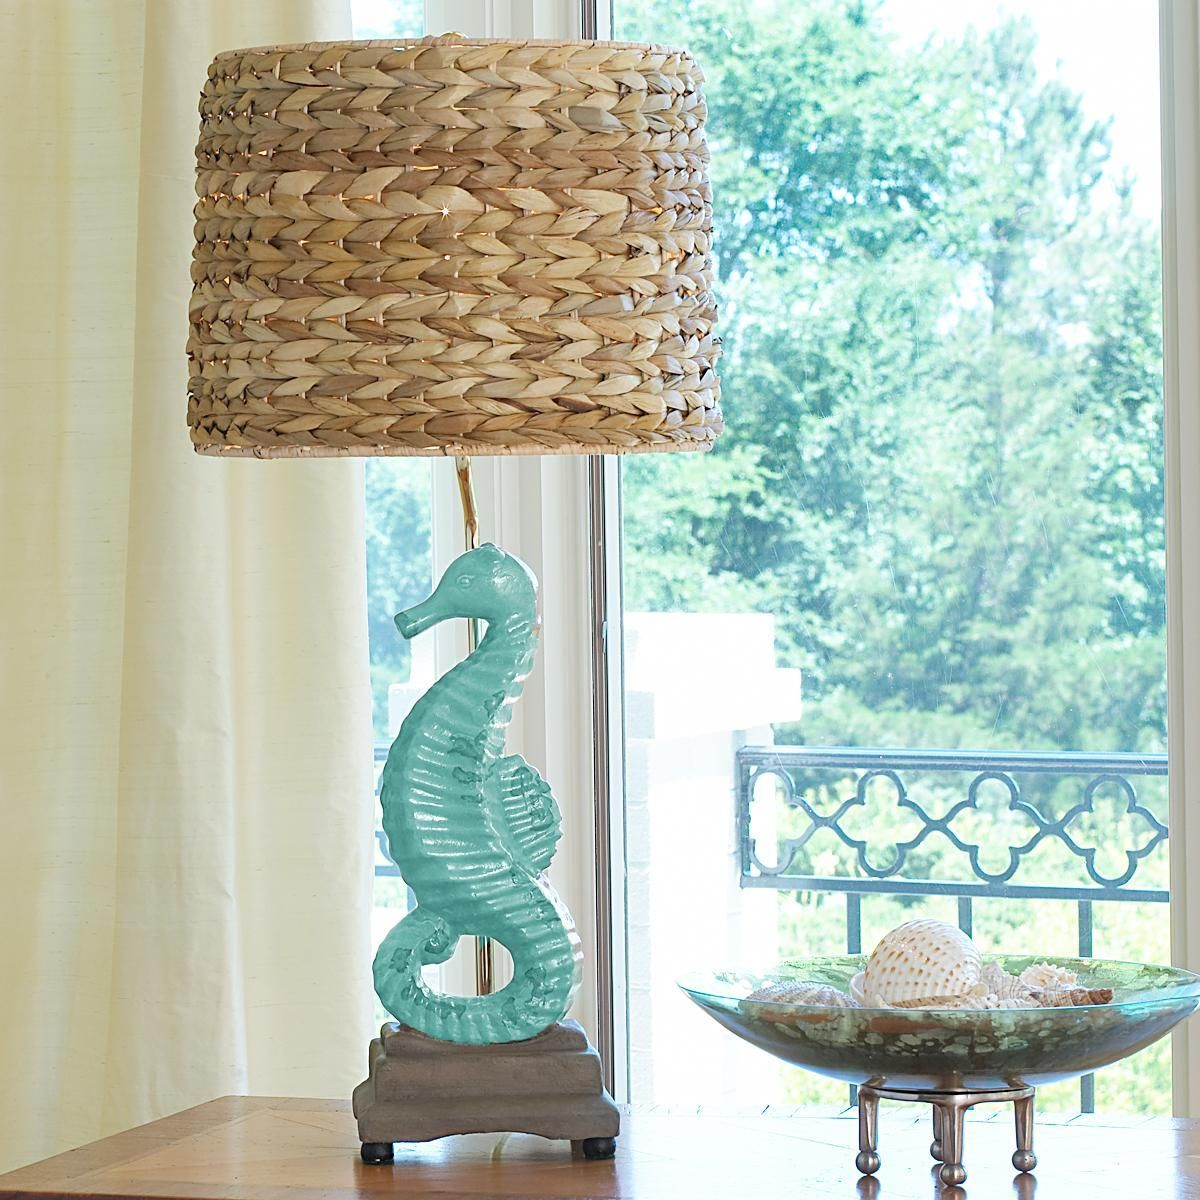 A Possibility For A Table Lamp In The Hawaiian Themed